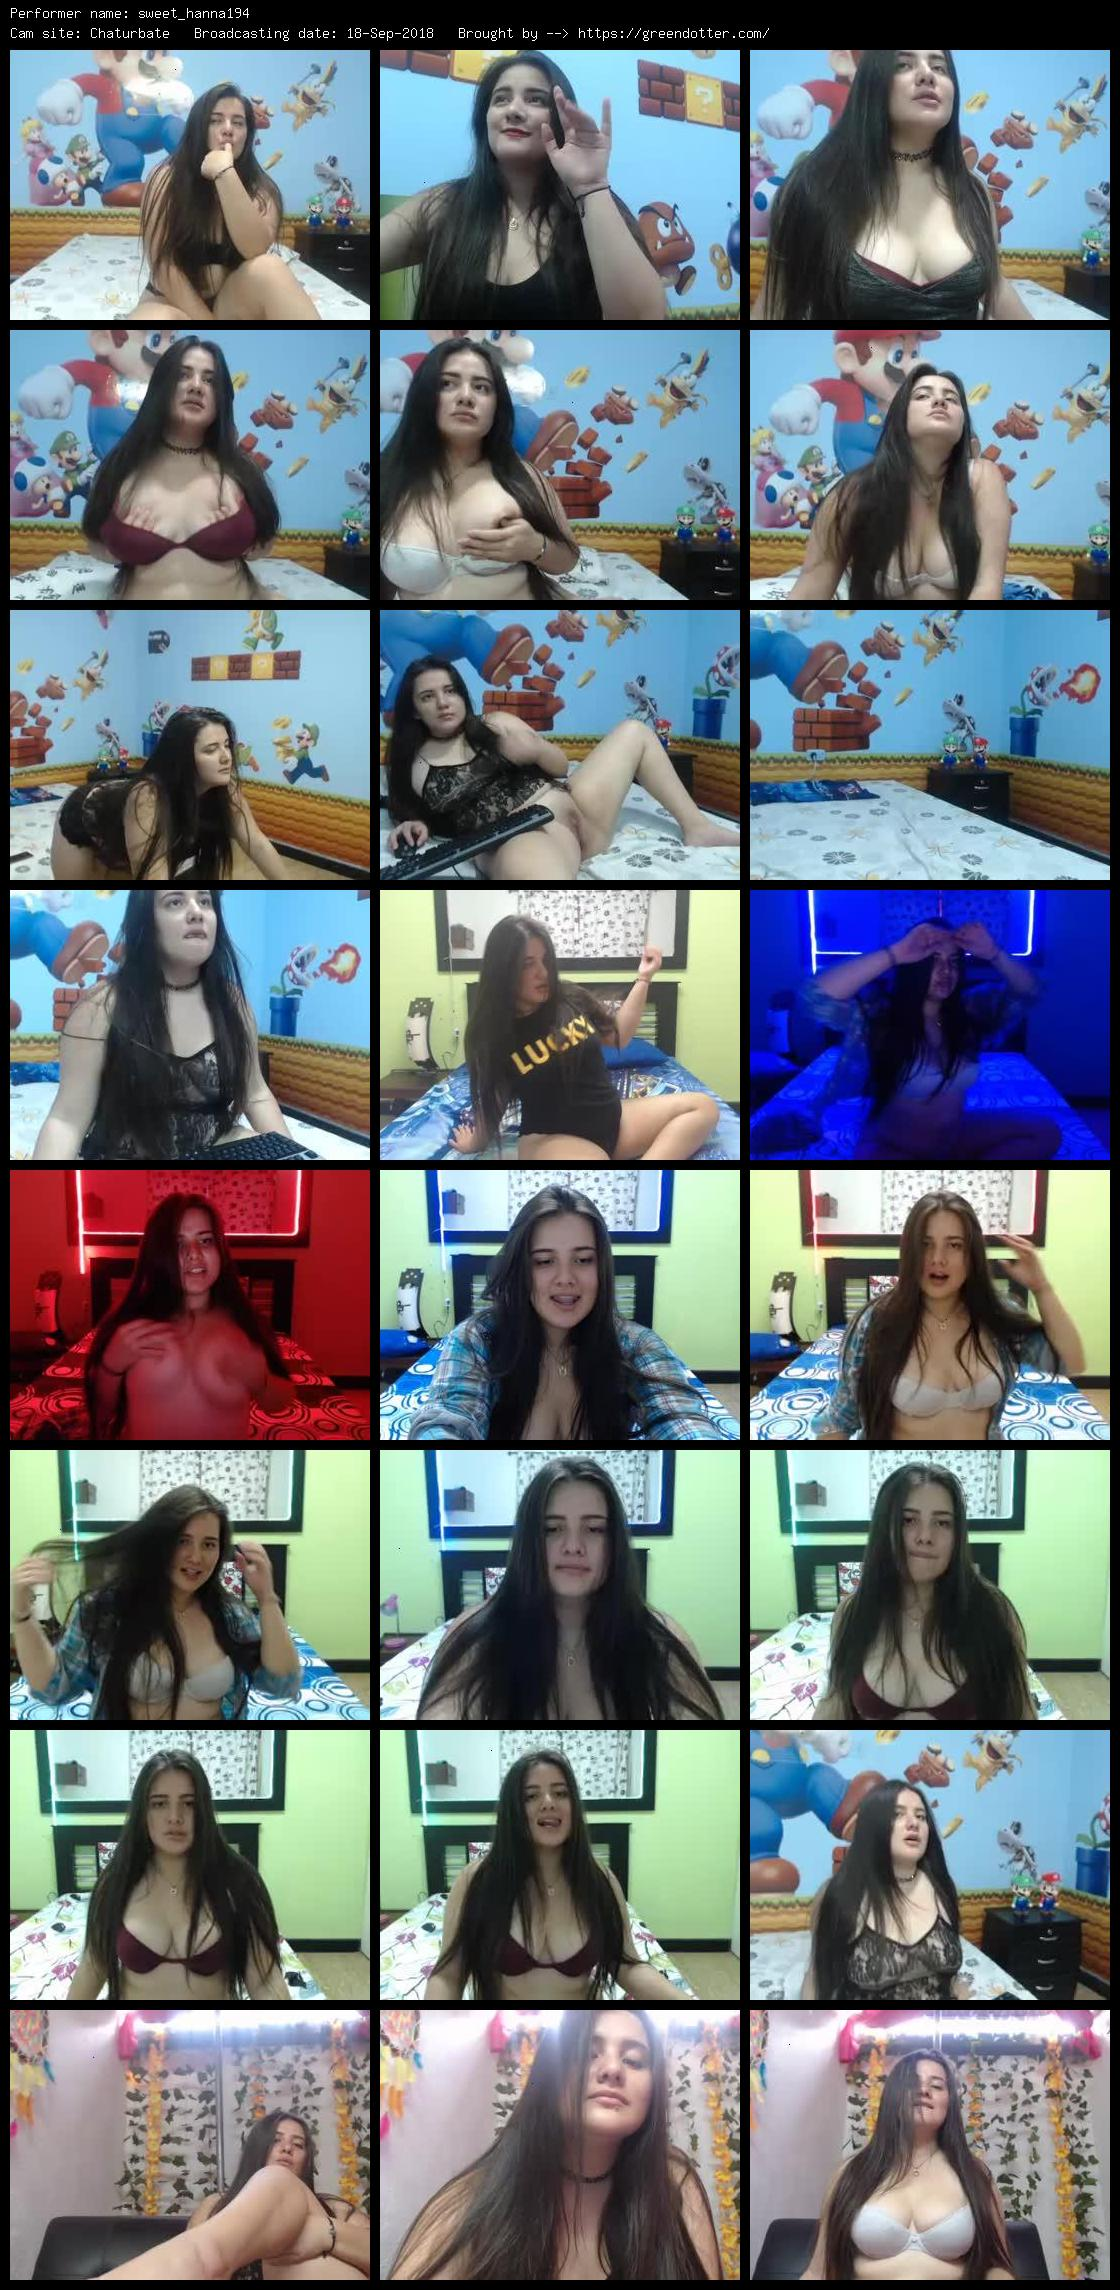 sweet_hanna194's Show Preview